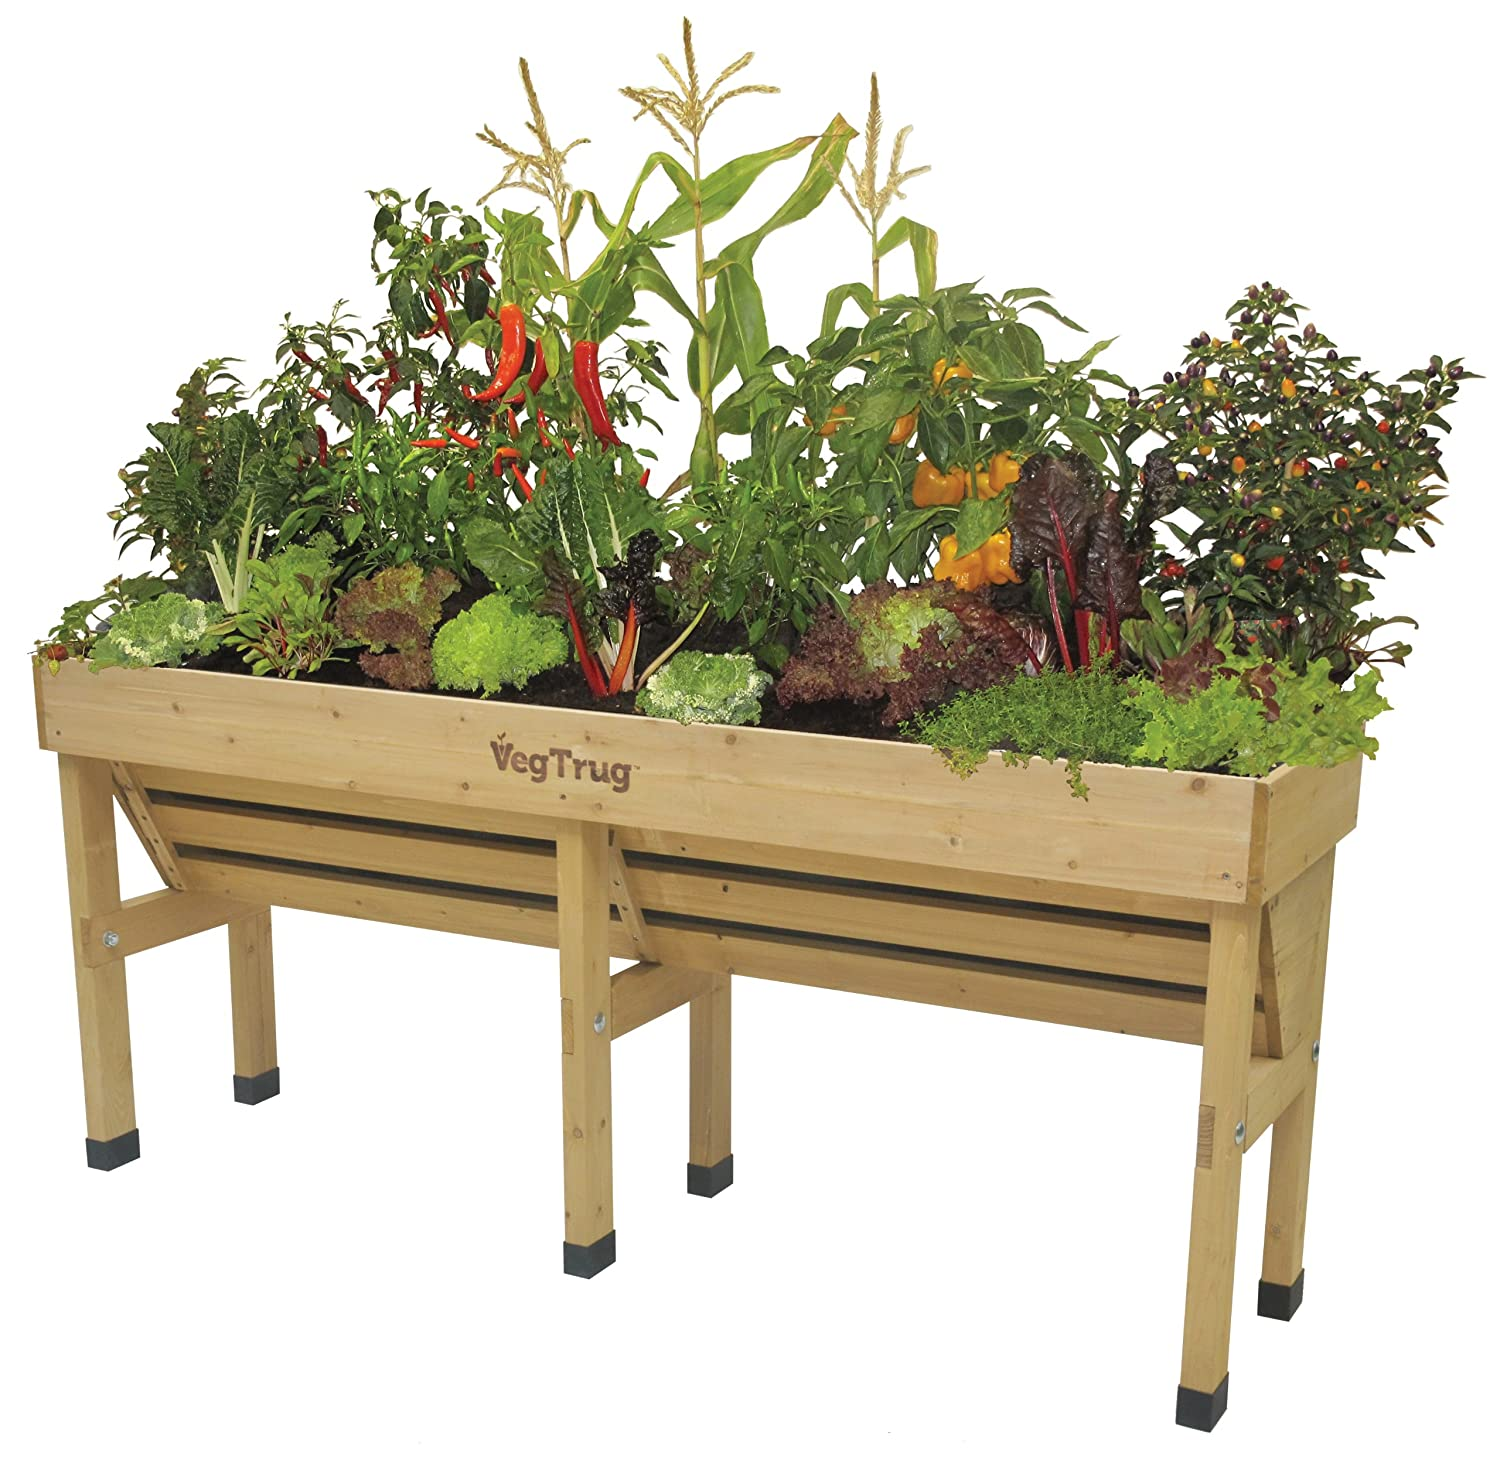 Amazon.com : VegTrug Wallhugger Raised Garden Planter : Garden U0026 Outdoor